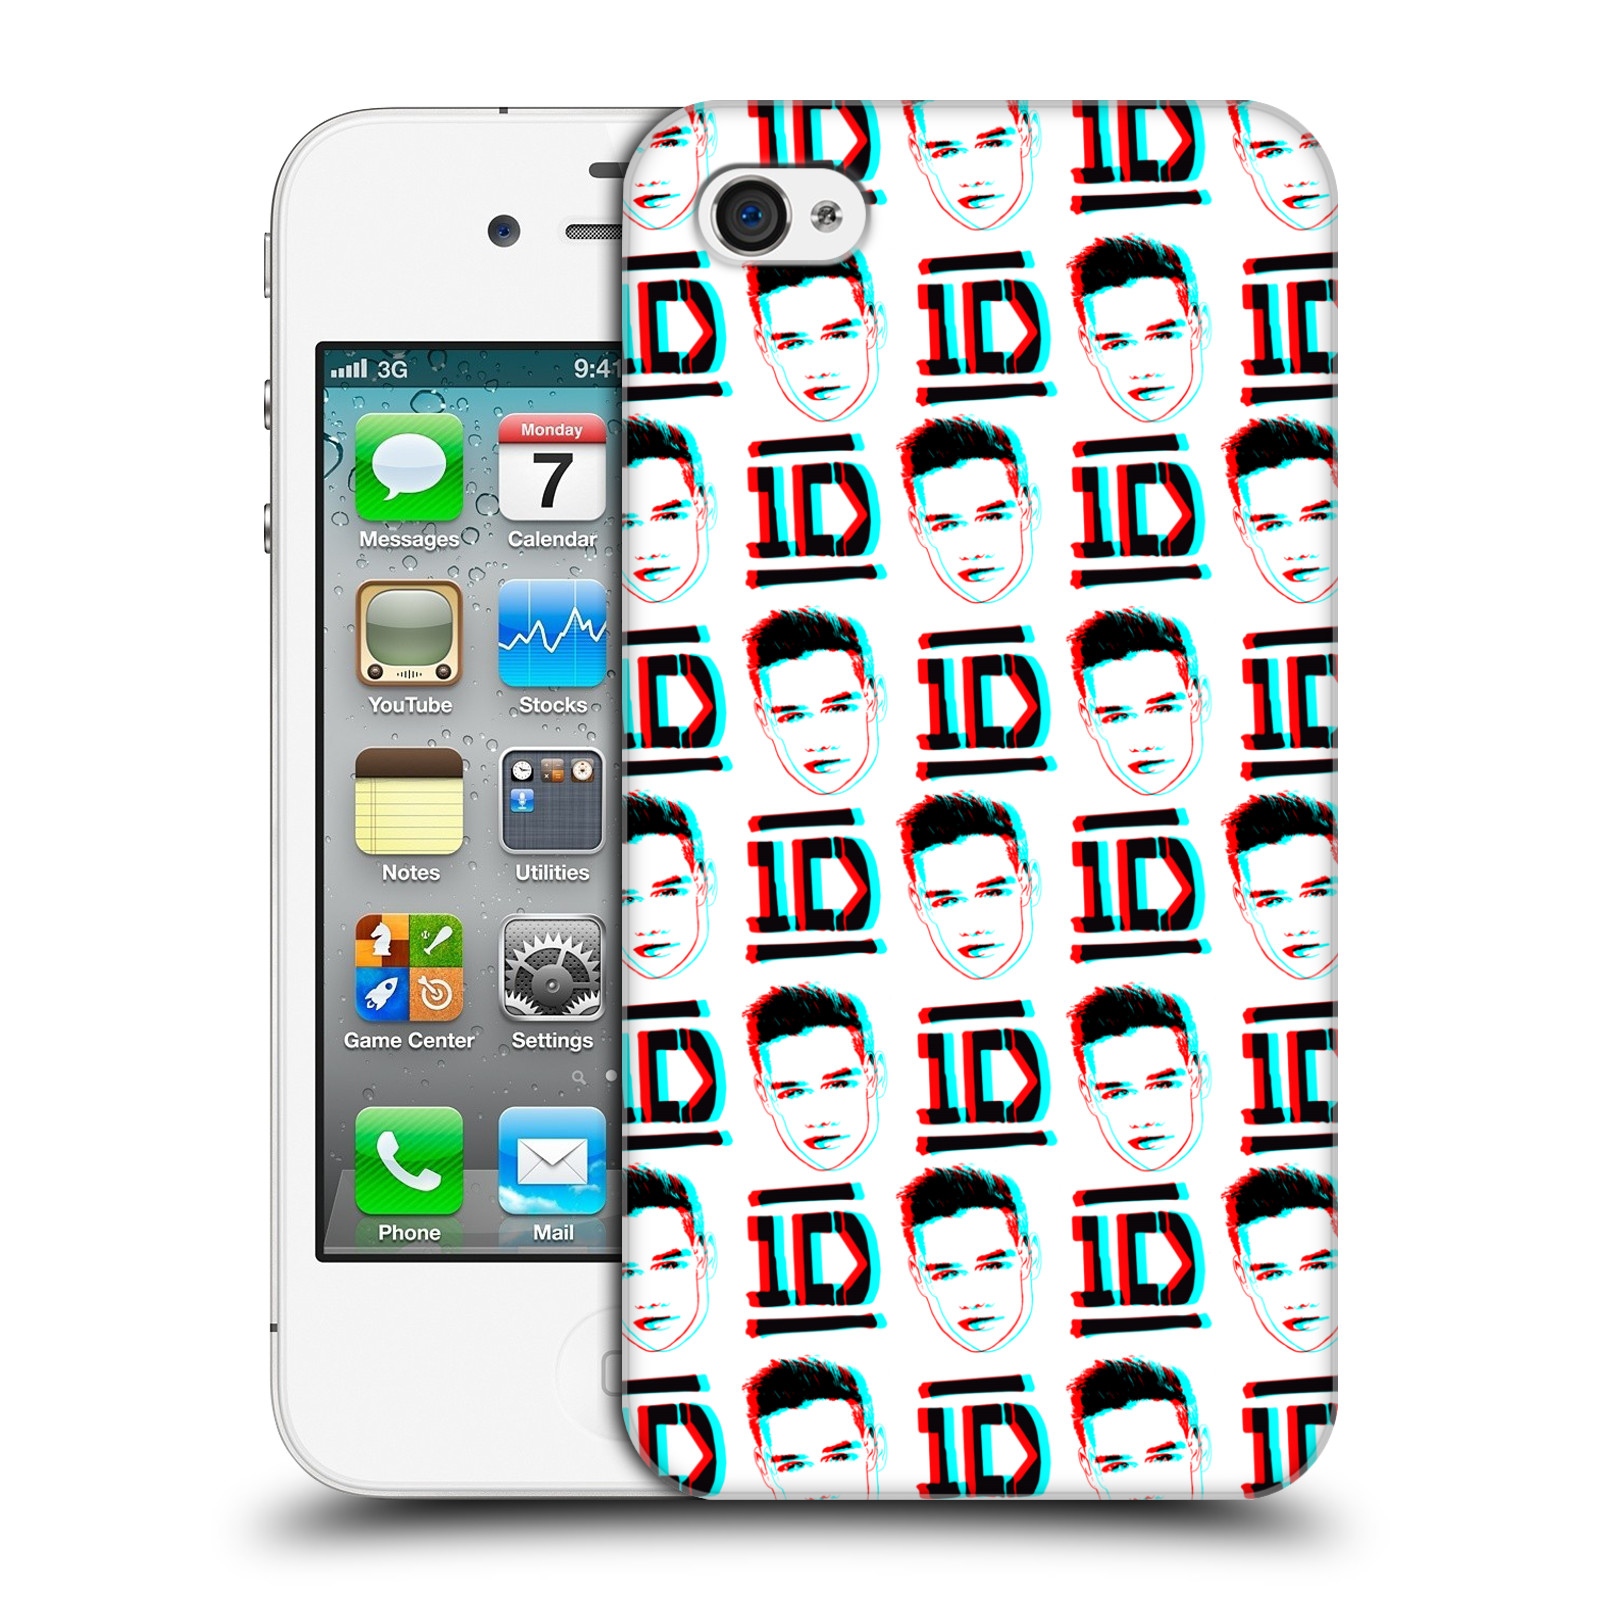 OFFICIAL-ONE-DIRECTION-DOODLE-FACE-PATTERNS-HARD-BACK-CASE-FOR-APPLE-iPHONE-4-4S